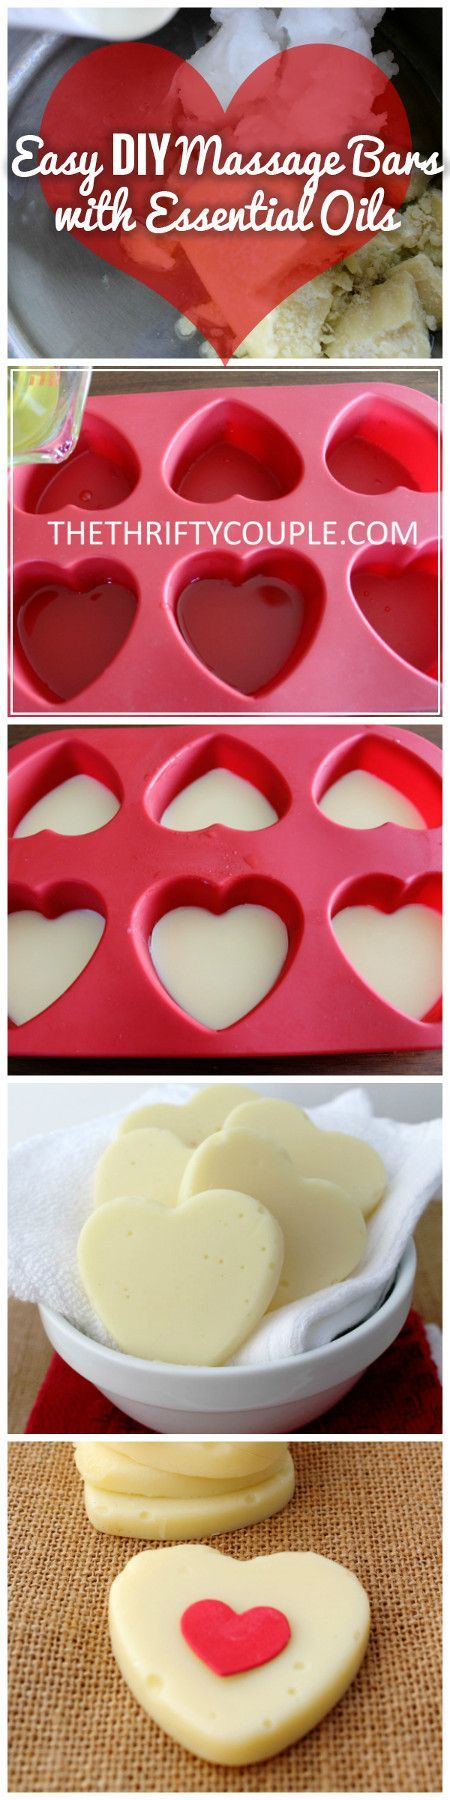 What a great recipe! If you have always wanted to learn how make the lotion massage bars, here's your chance. Did you know it was this easy? Maybe 10 mins of hands-on time?? It is a frugal solution to homemade moisturizers and also a nice DIY gift idea. Plus you can make them any shape and use any essential oils.